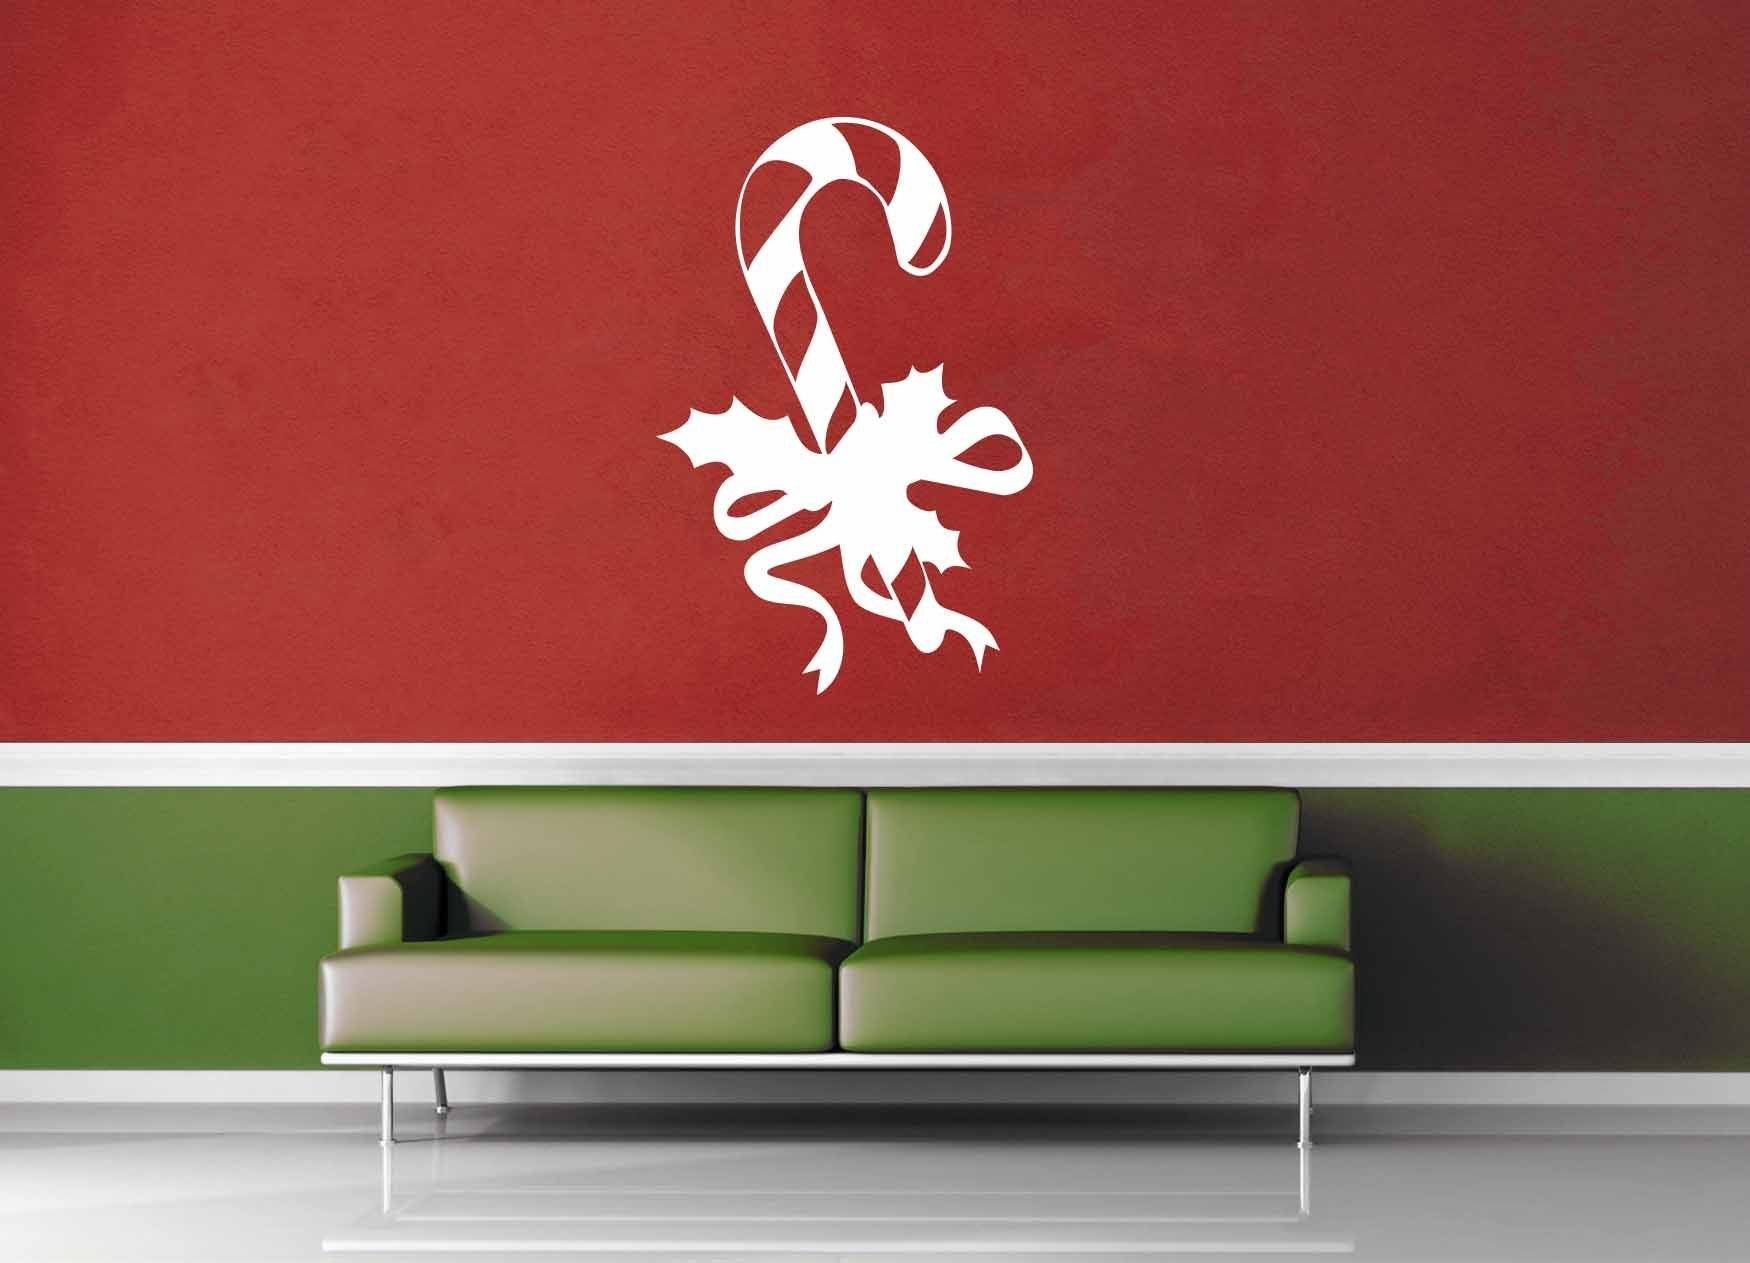 Candy Cane - Holiday Décor - Wall Decal - geekerymade